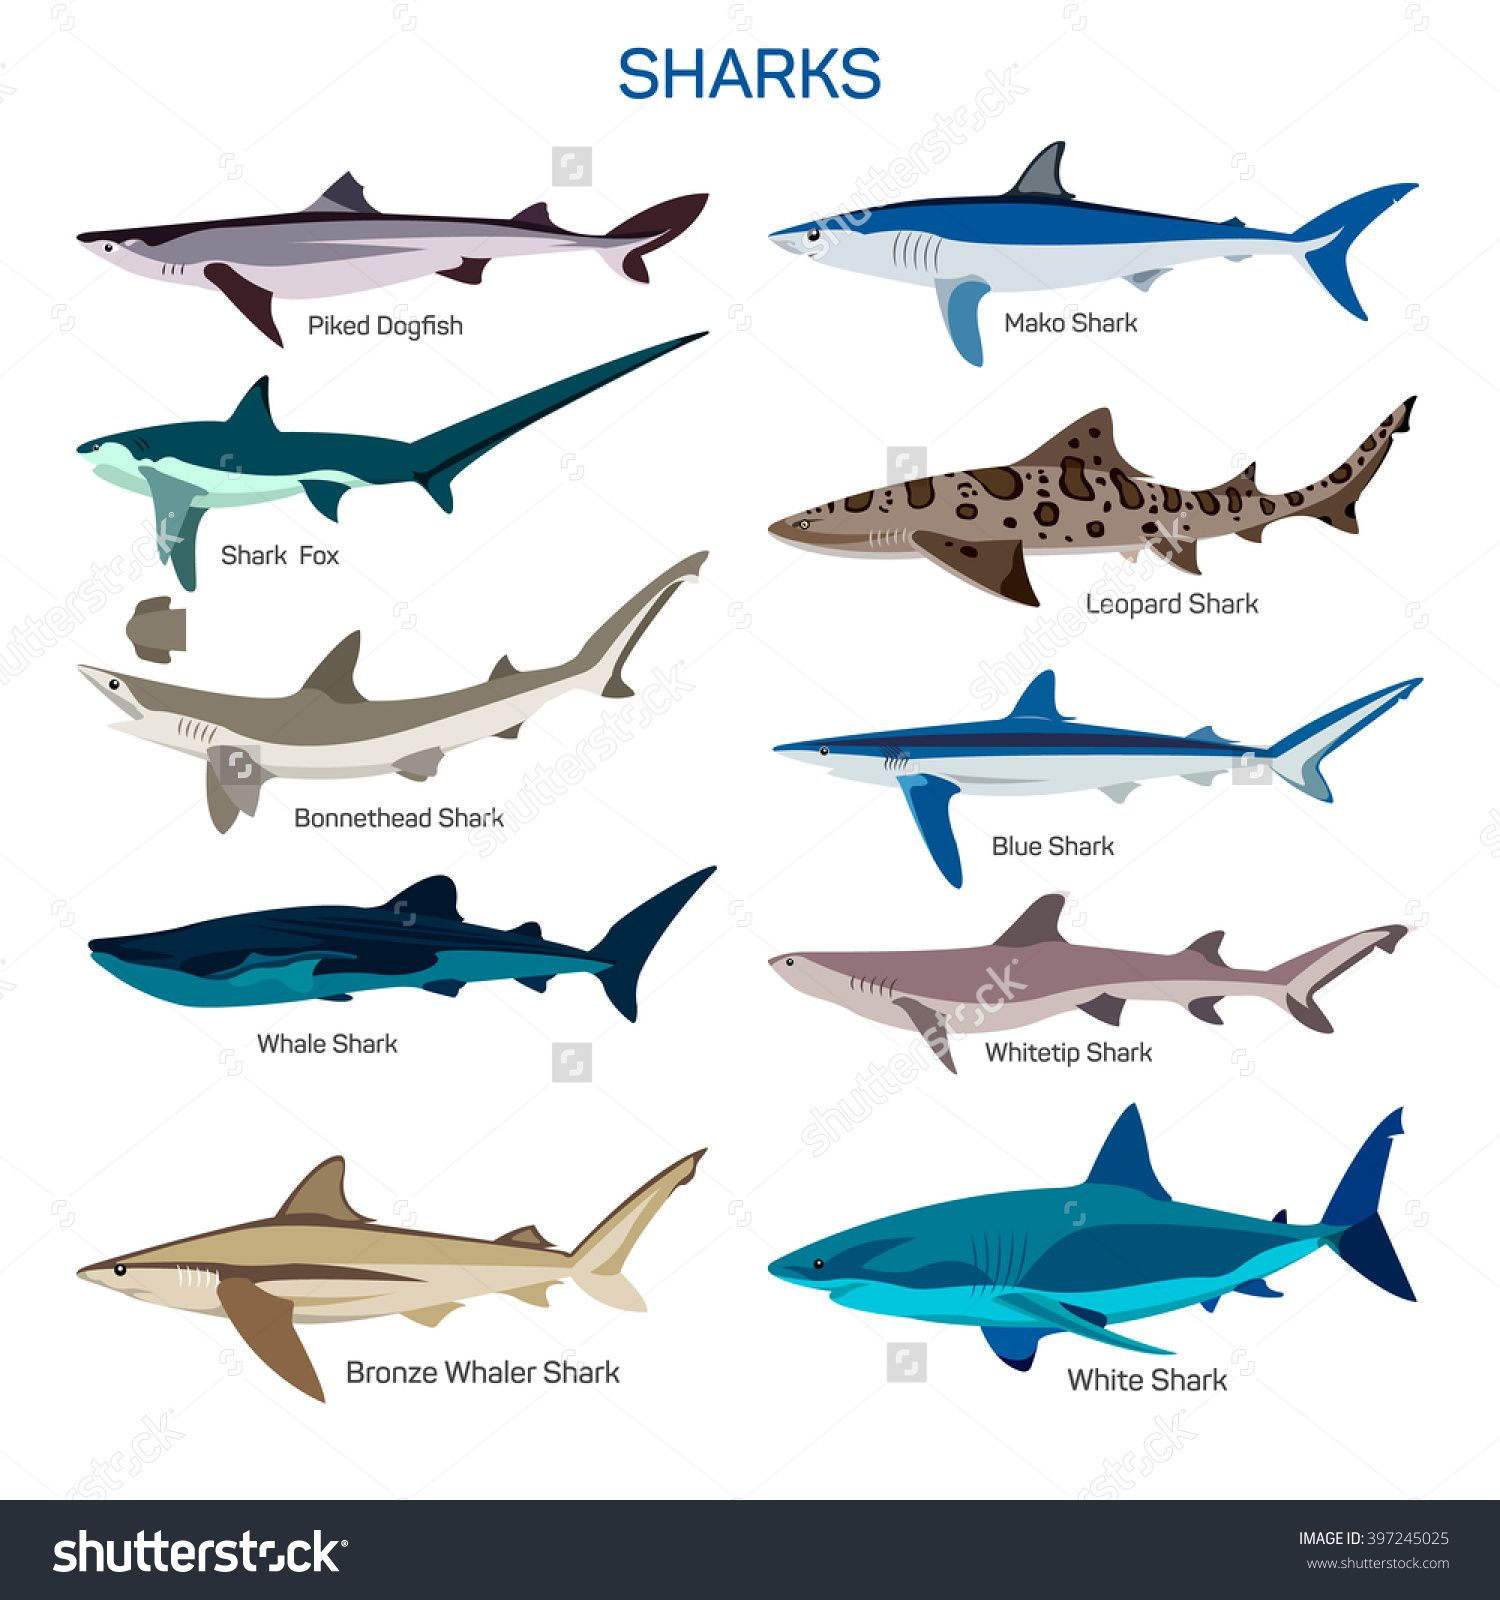 an analysis of the different types of sharks chondrichtyes This paper contains a collection of 817 citations (no conference abstracts) on topics related to extant and extinct chondrichthyes (sharks, rays, and chimaeras) as well as a list of chondrichthyan species and hosted parasites newly described in 2017.